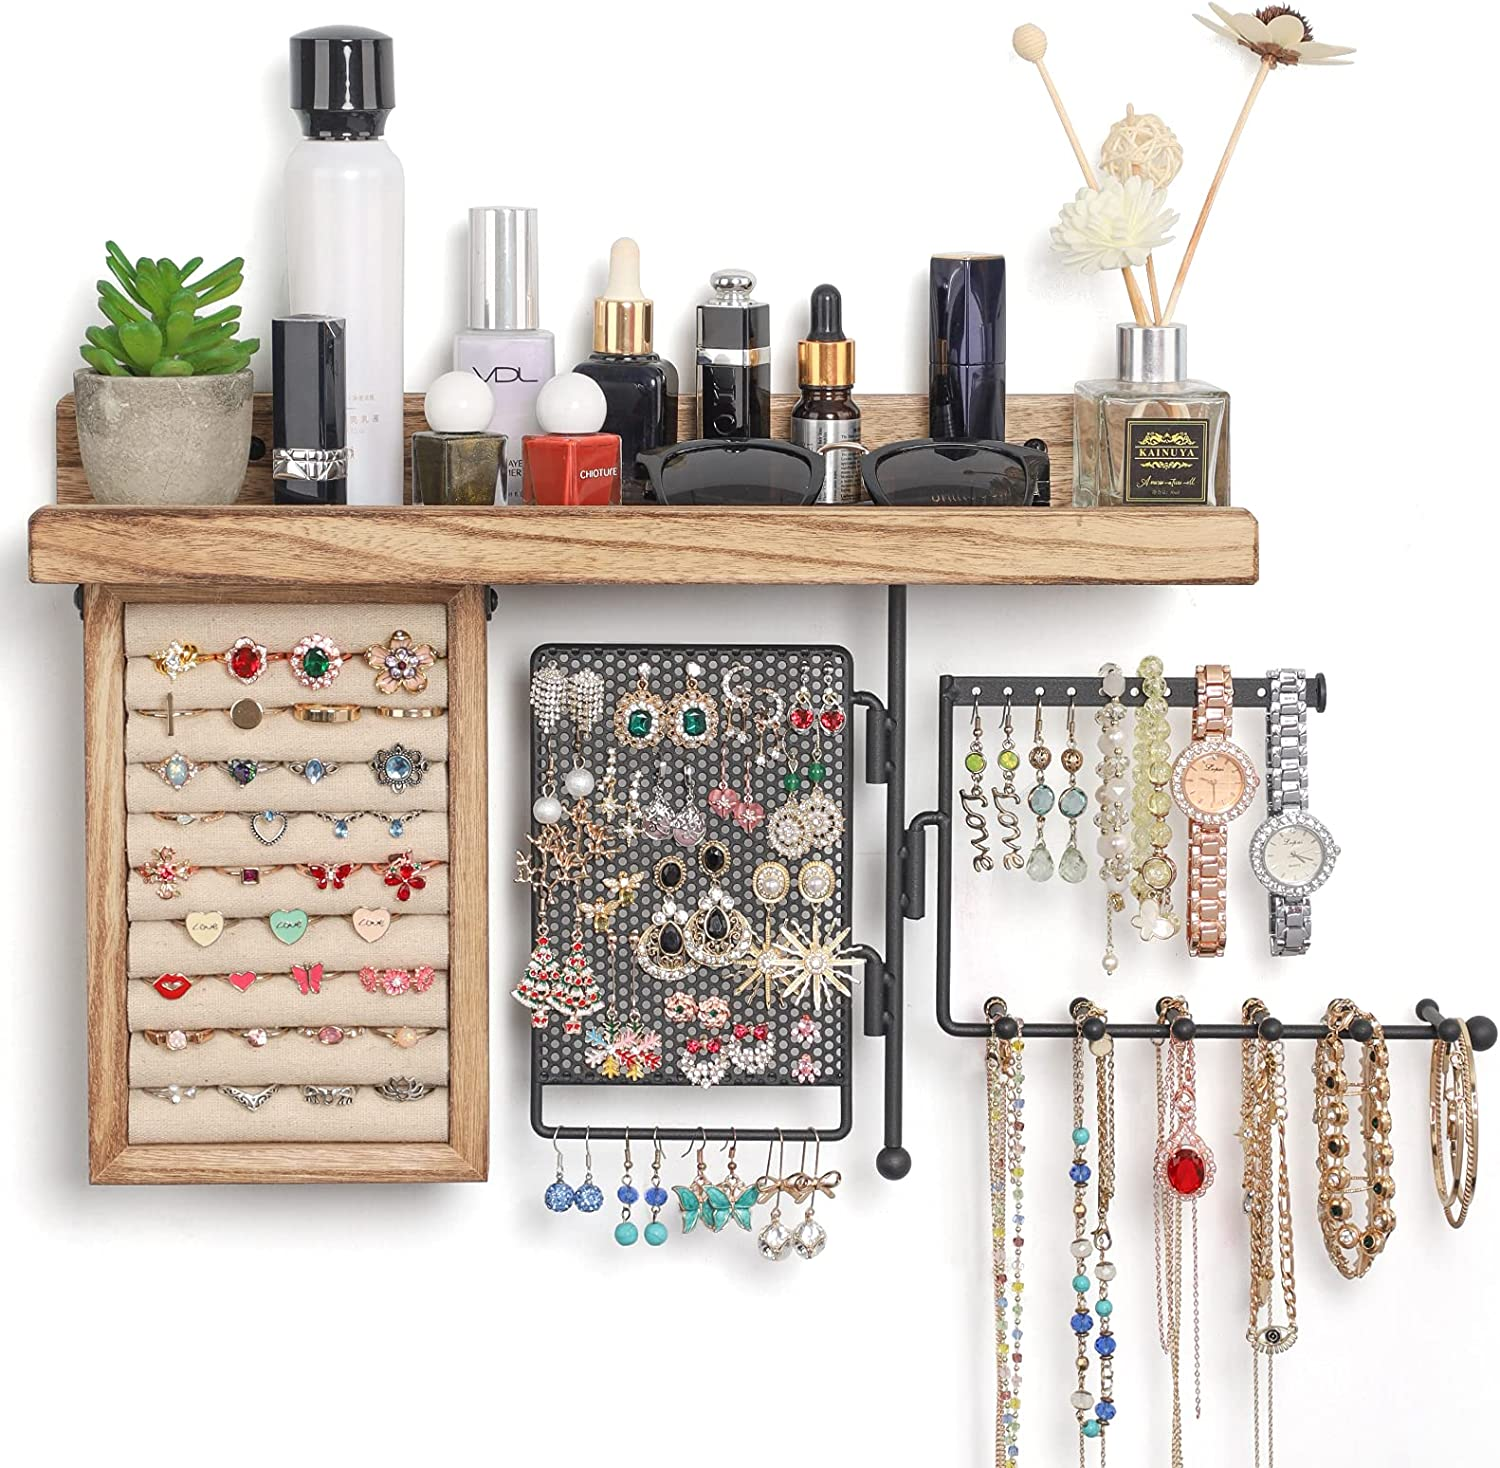 SOLIMINTR Hanging Jewelry Organizer Wall Mount Jewelry Holder with Rustic  Wood Shelf, Ring Display Box, Ear Studs Earring Holder, Rotating Necklace  ...